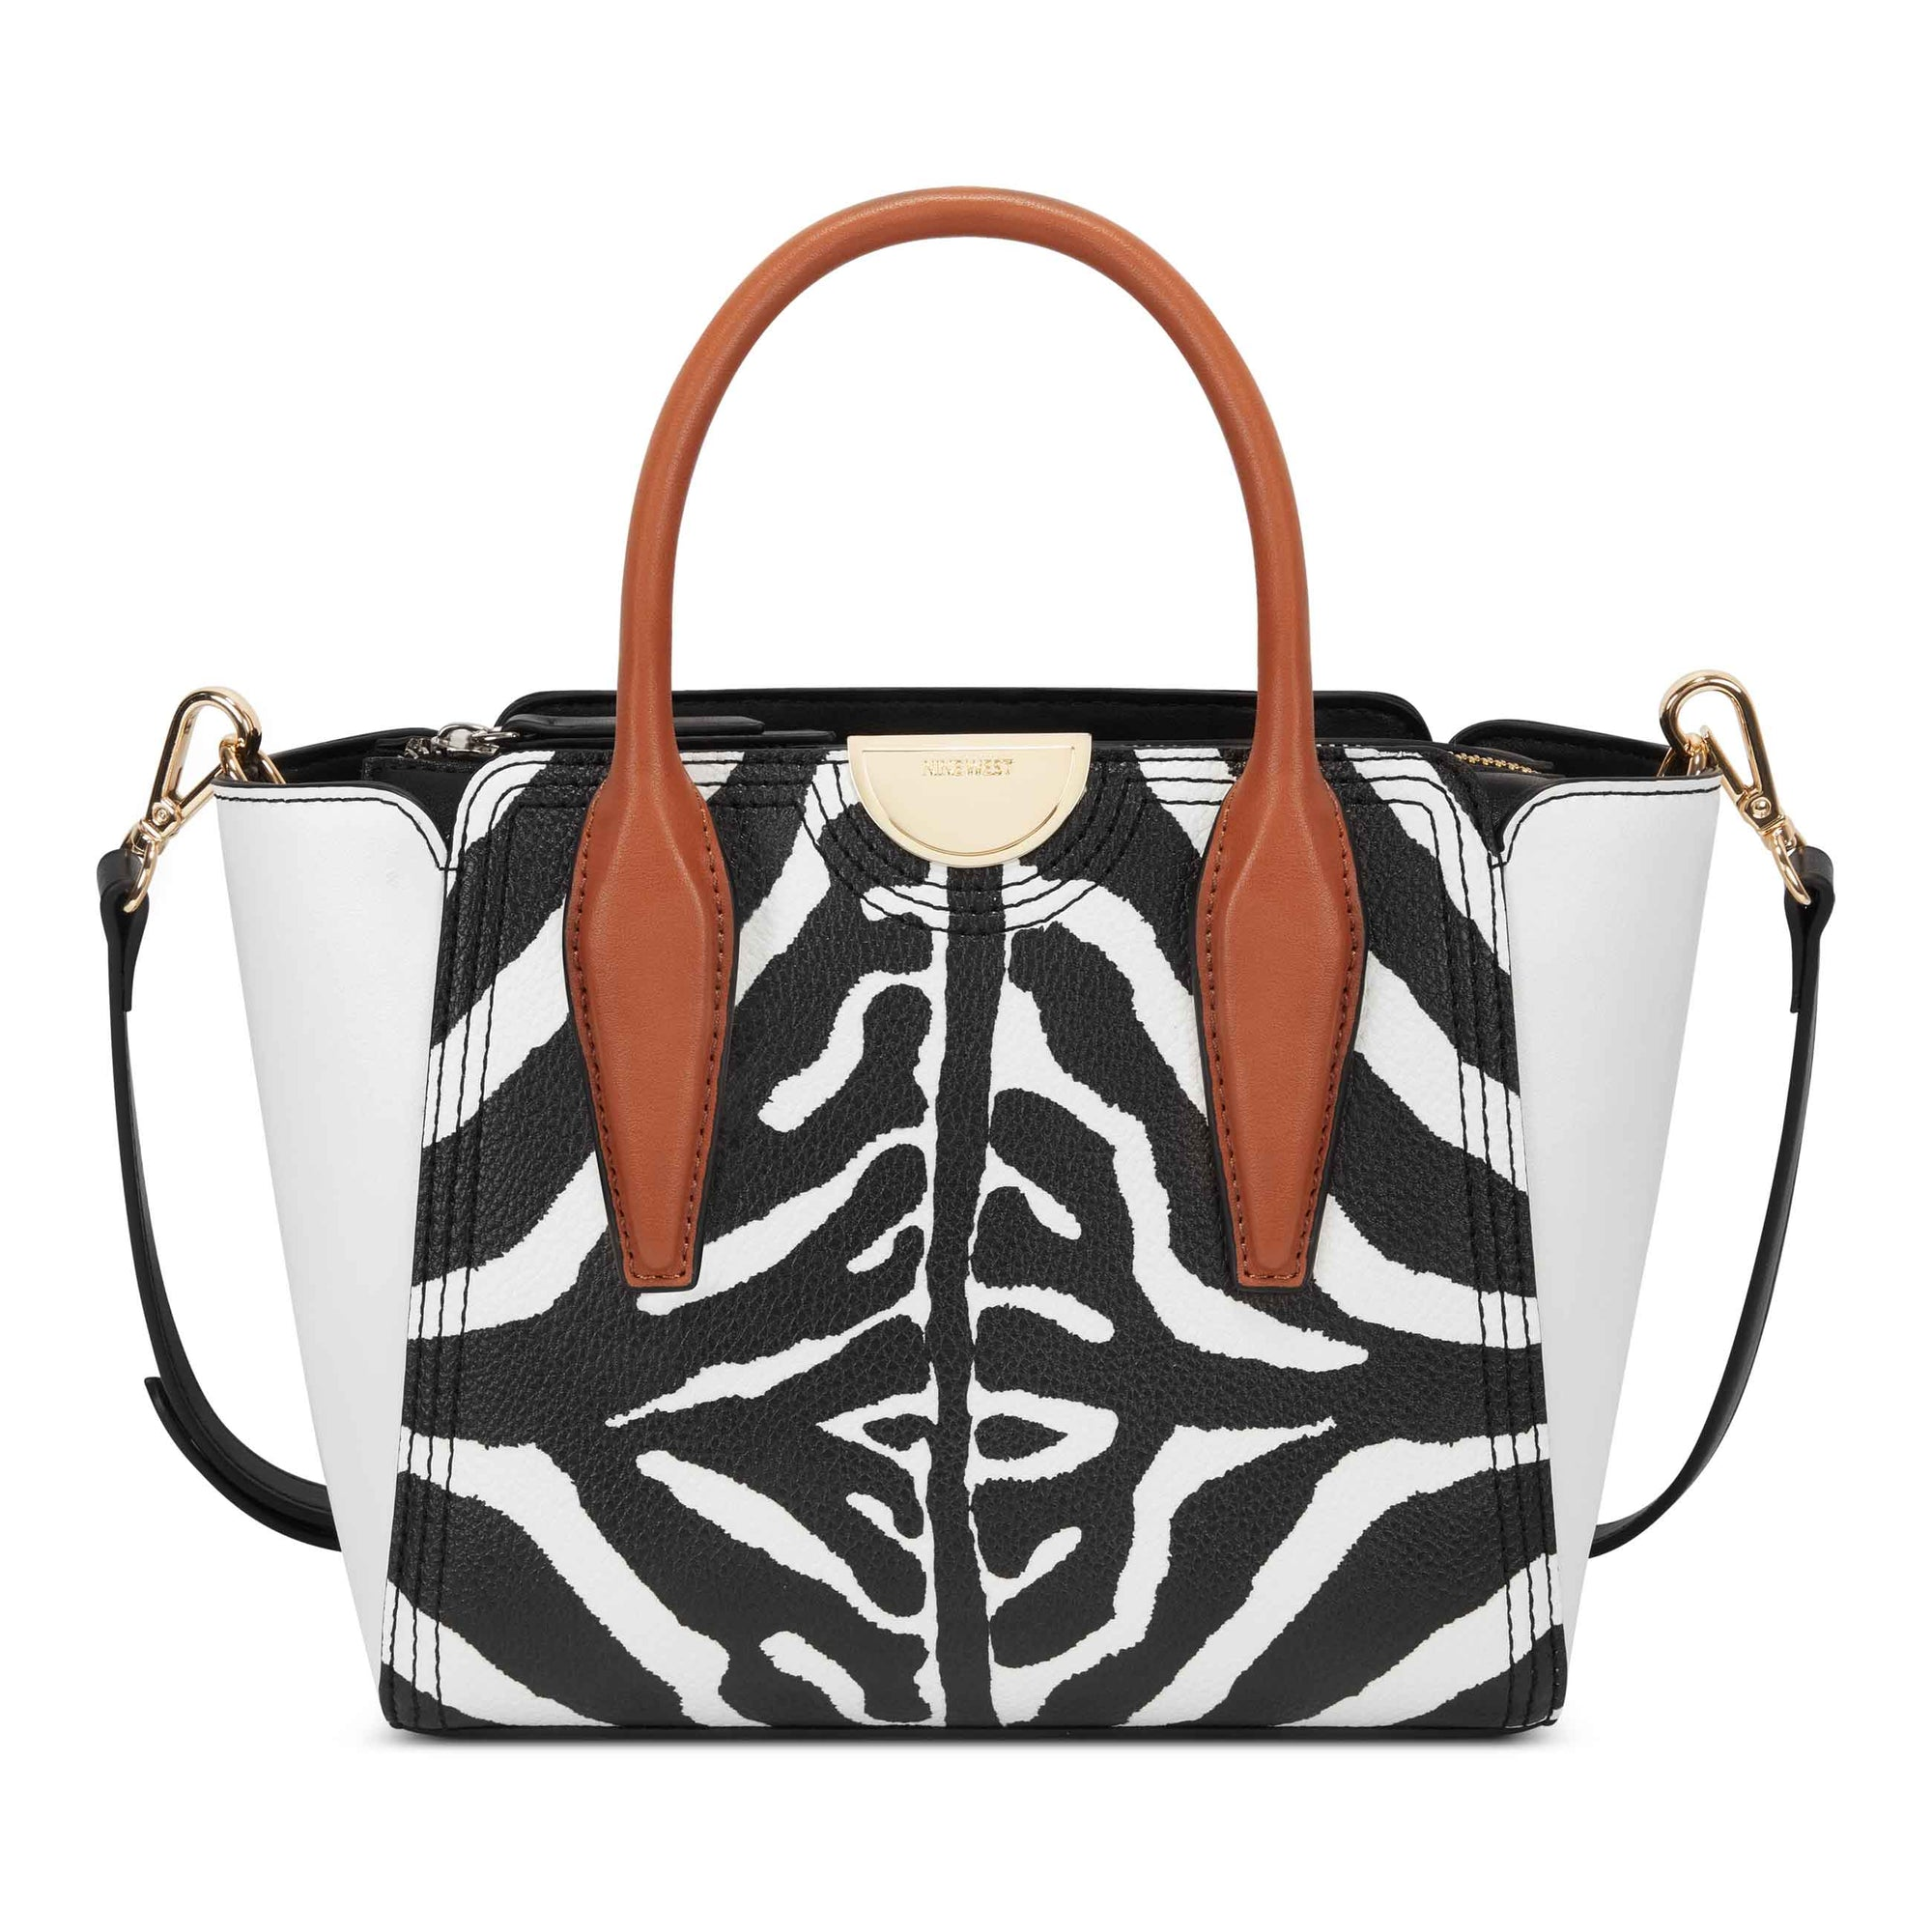 hattie-small-satchel-in-zebra